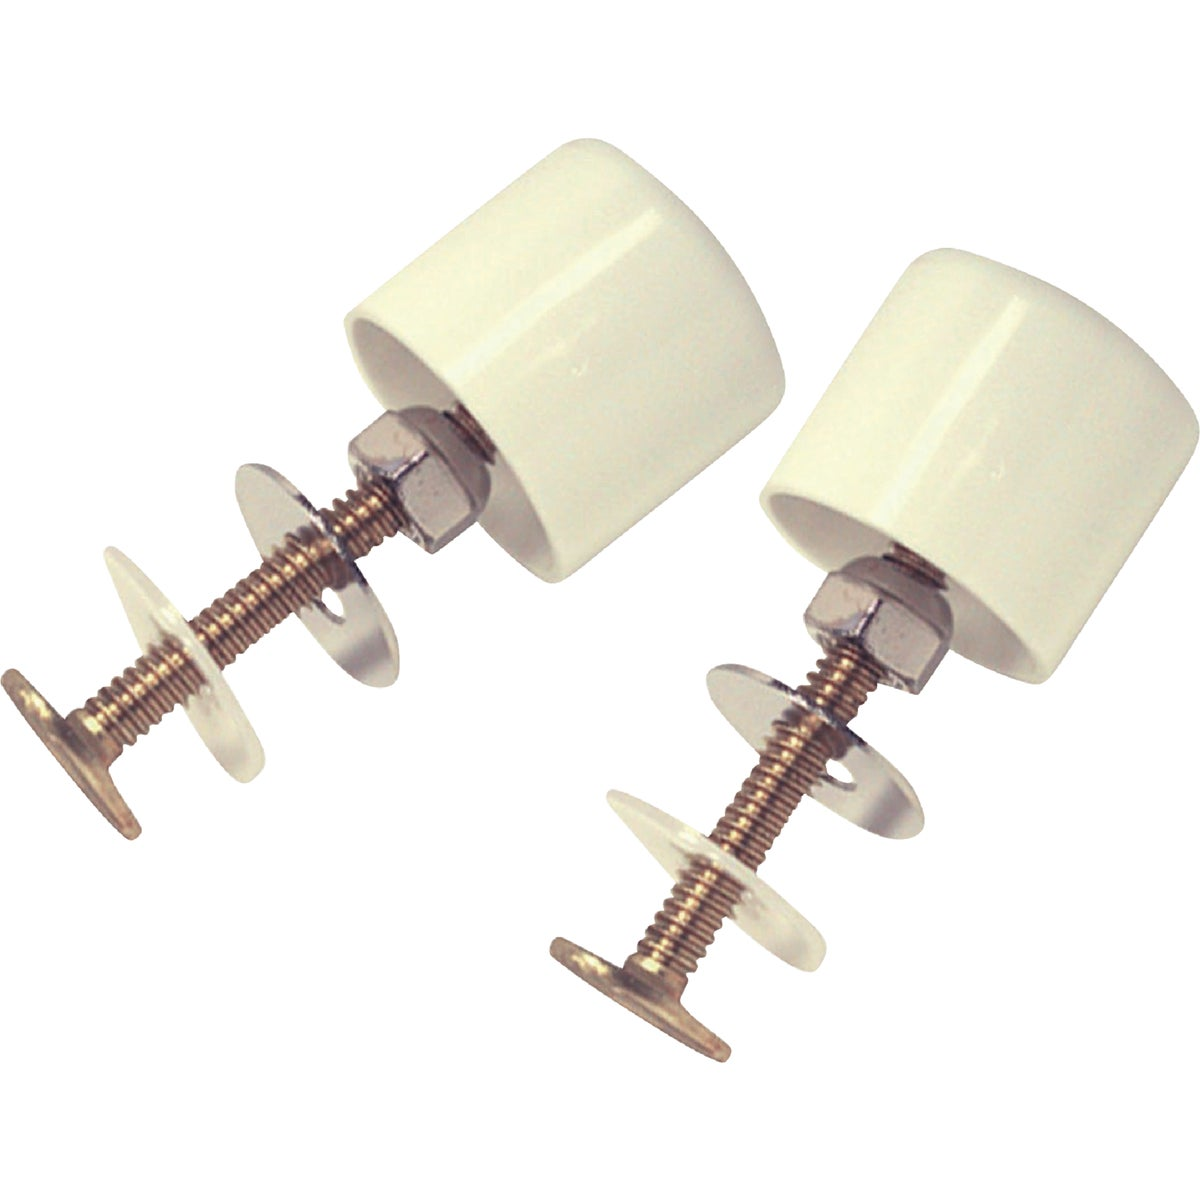 "TWISTER CAPS&5/16"" BOLTS - 88884 by Danco Perfect Match"